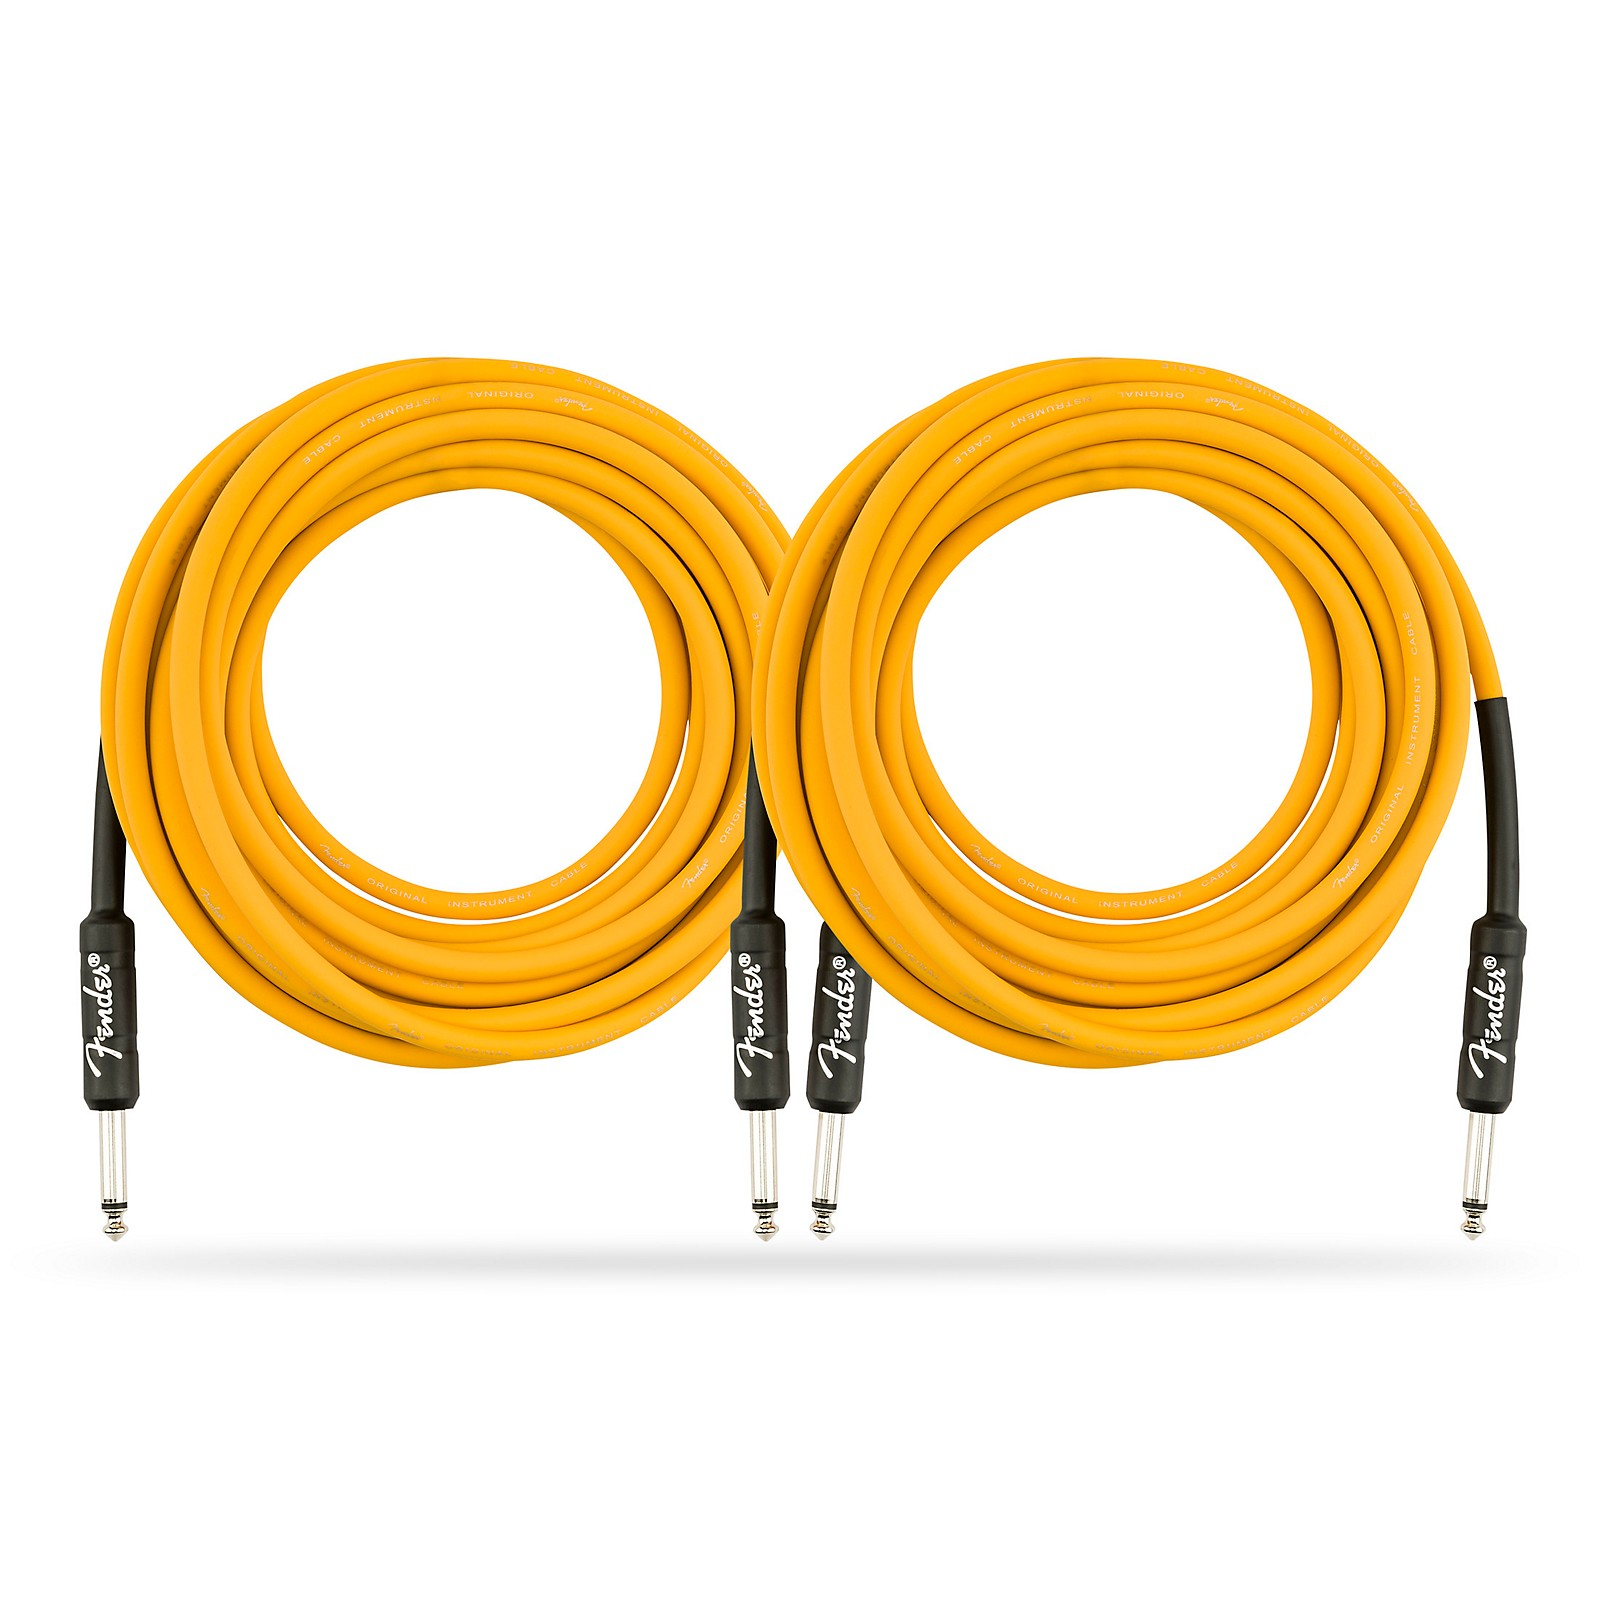 Fender Original Series Limited Edition Butterscotch Blonde Instrument Cable - 18.6 ft. - 2 Pack